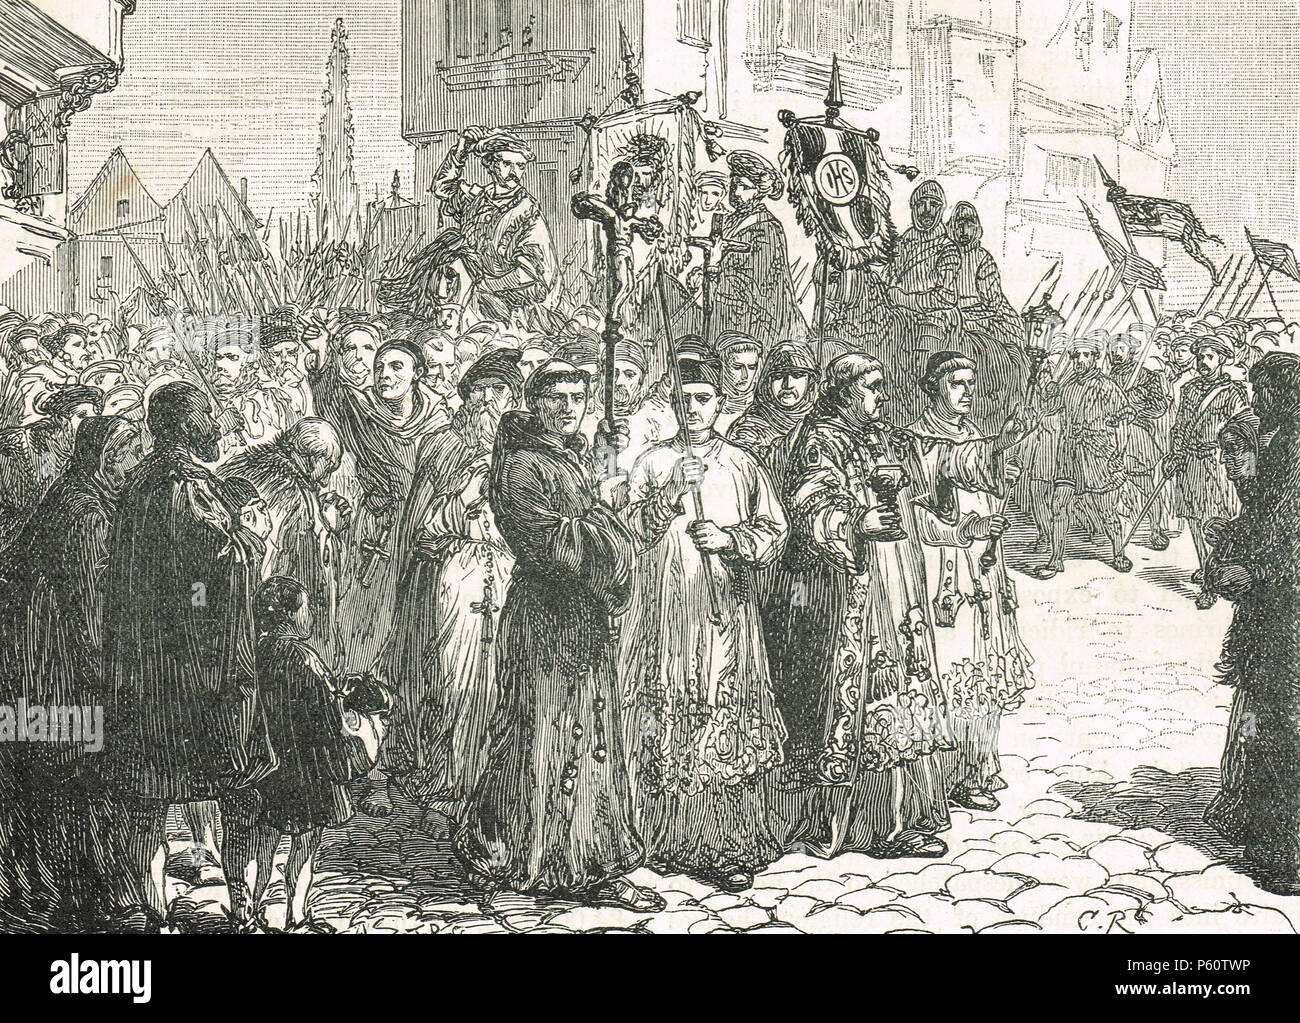 The Pilgrimage of Grace, popular uprising that began in Yorkshire, October 1536 - Stock Image